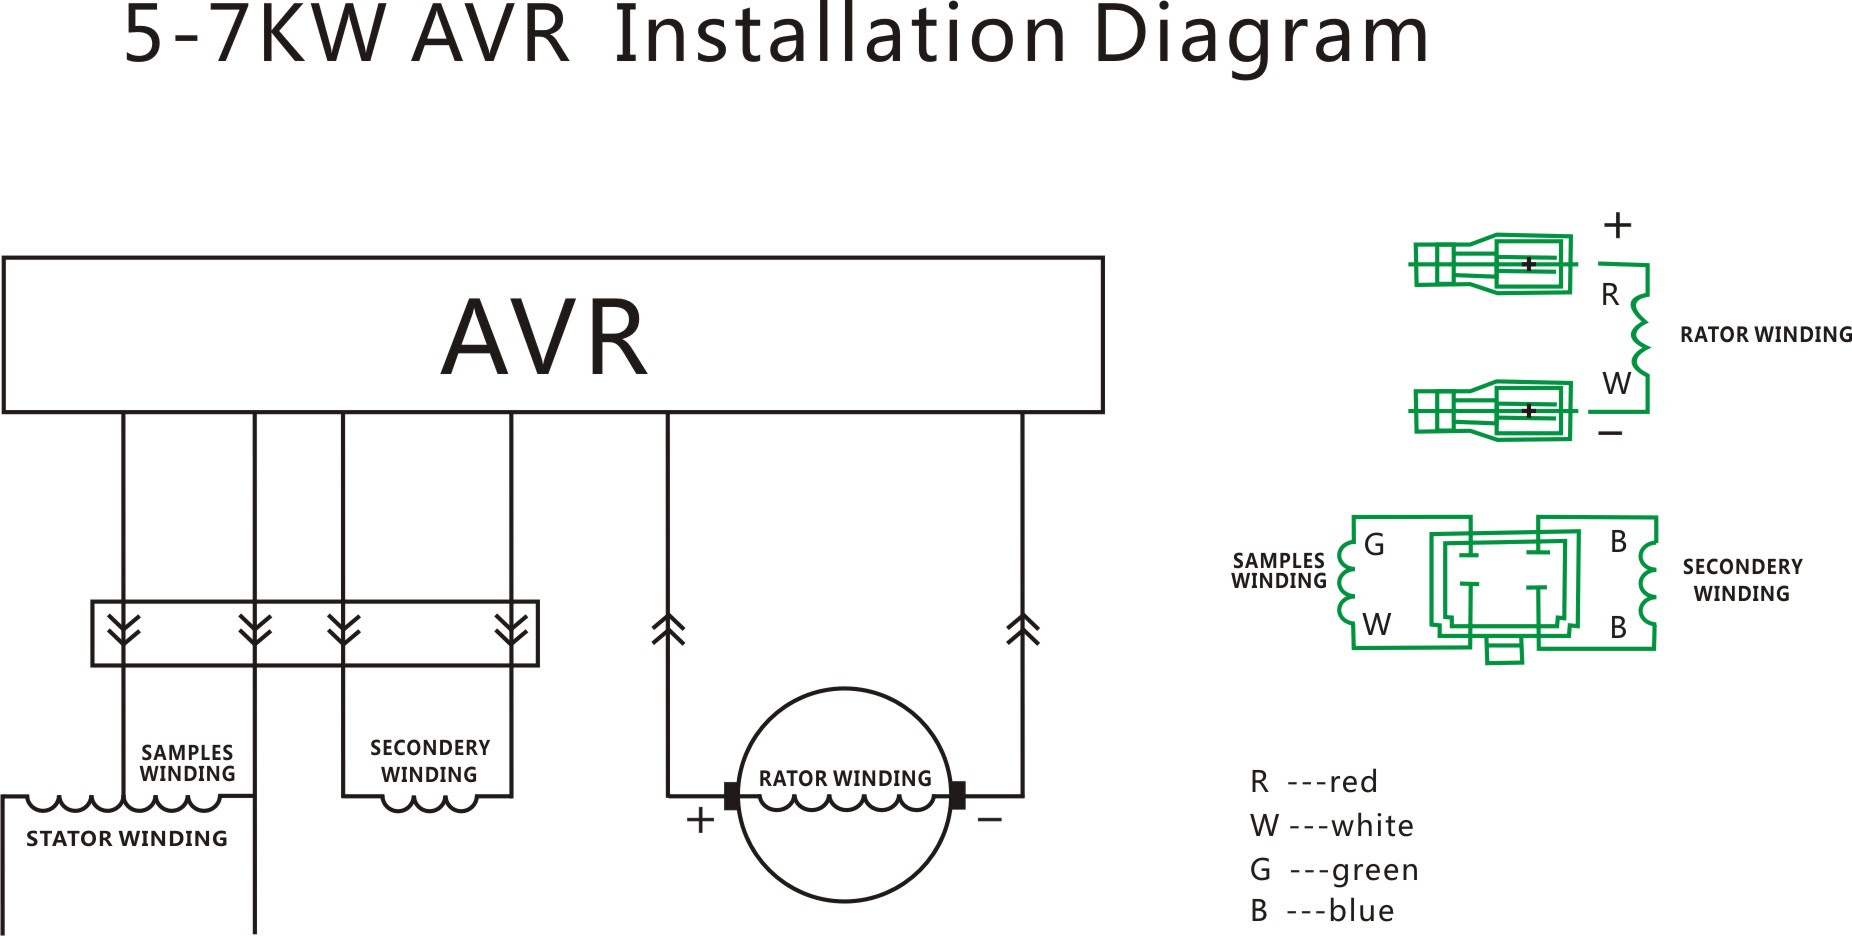 Secret Diagram: Circuit diagram of generator avr